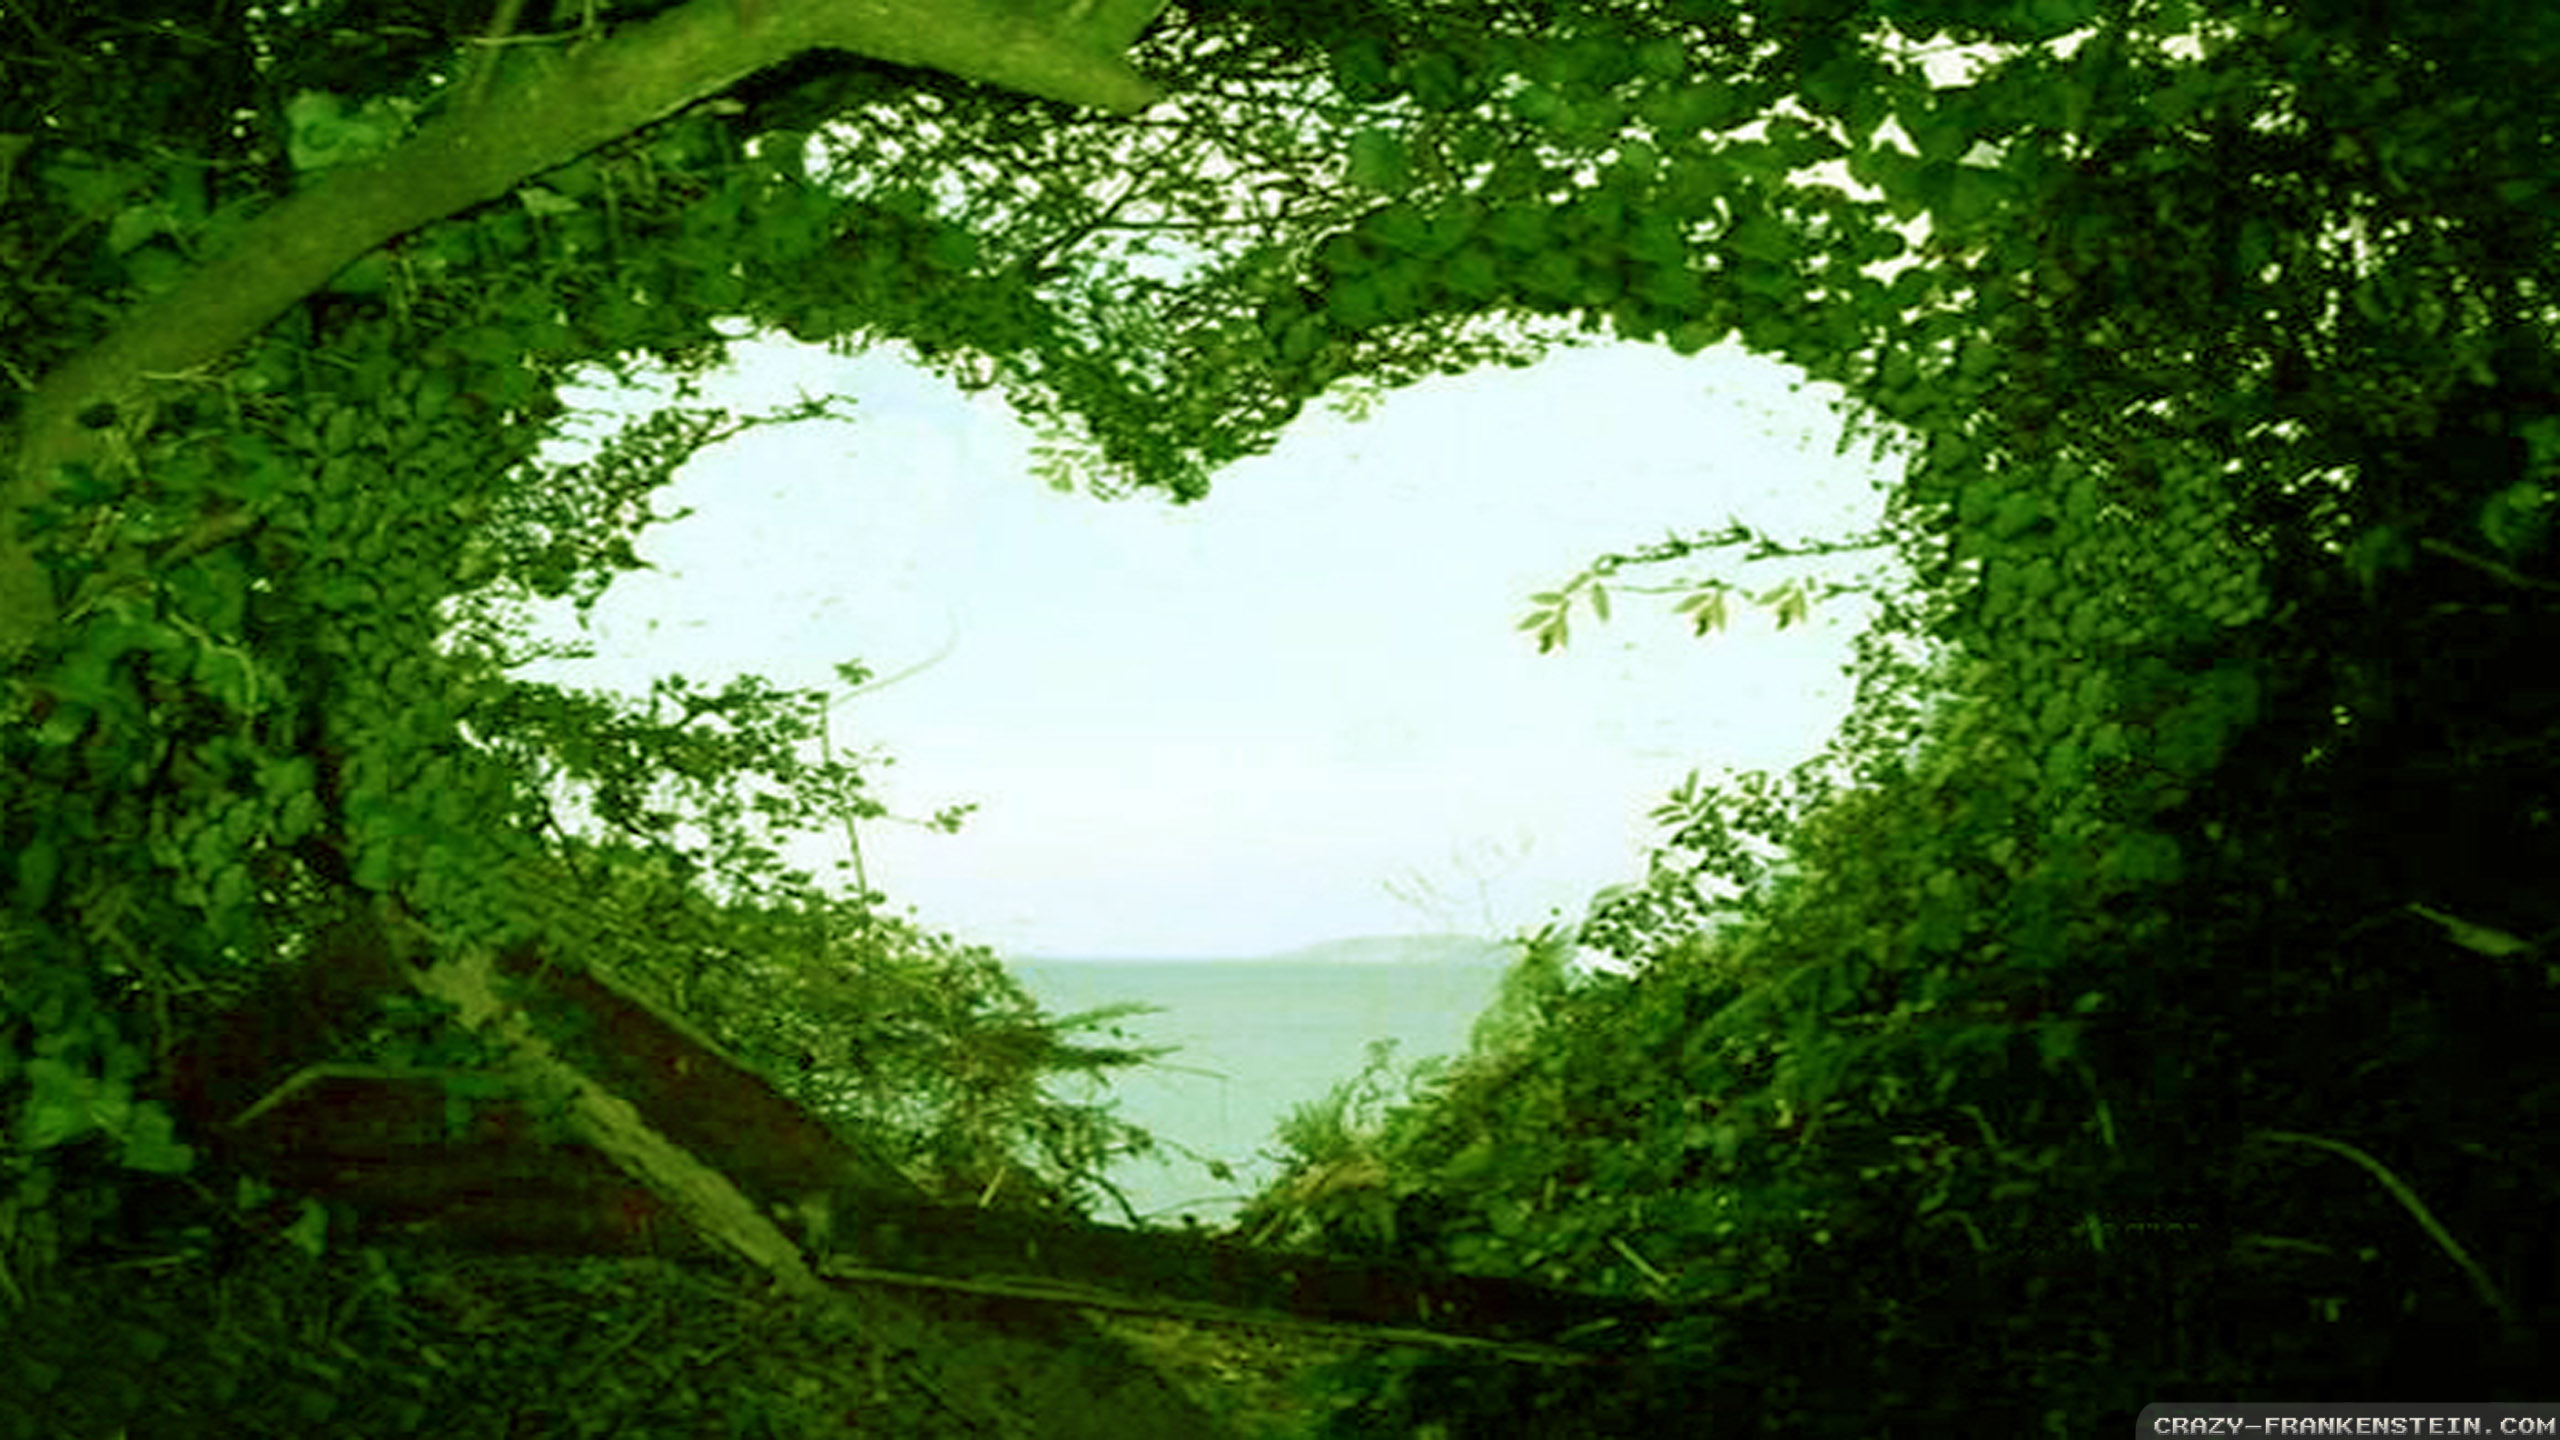 Nature Love Wallpaper HD Free download.